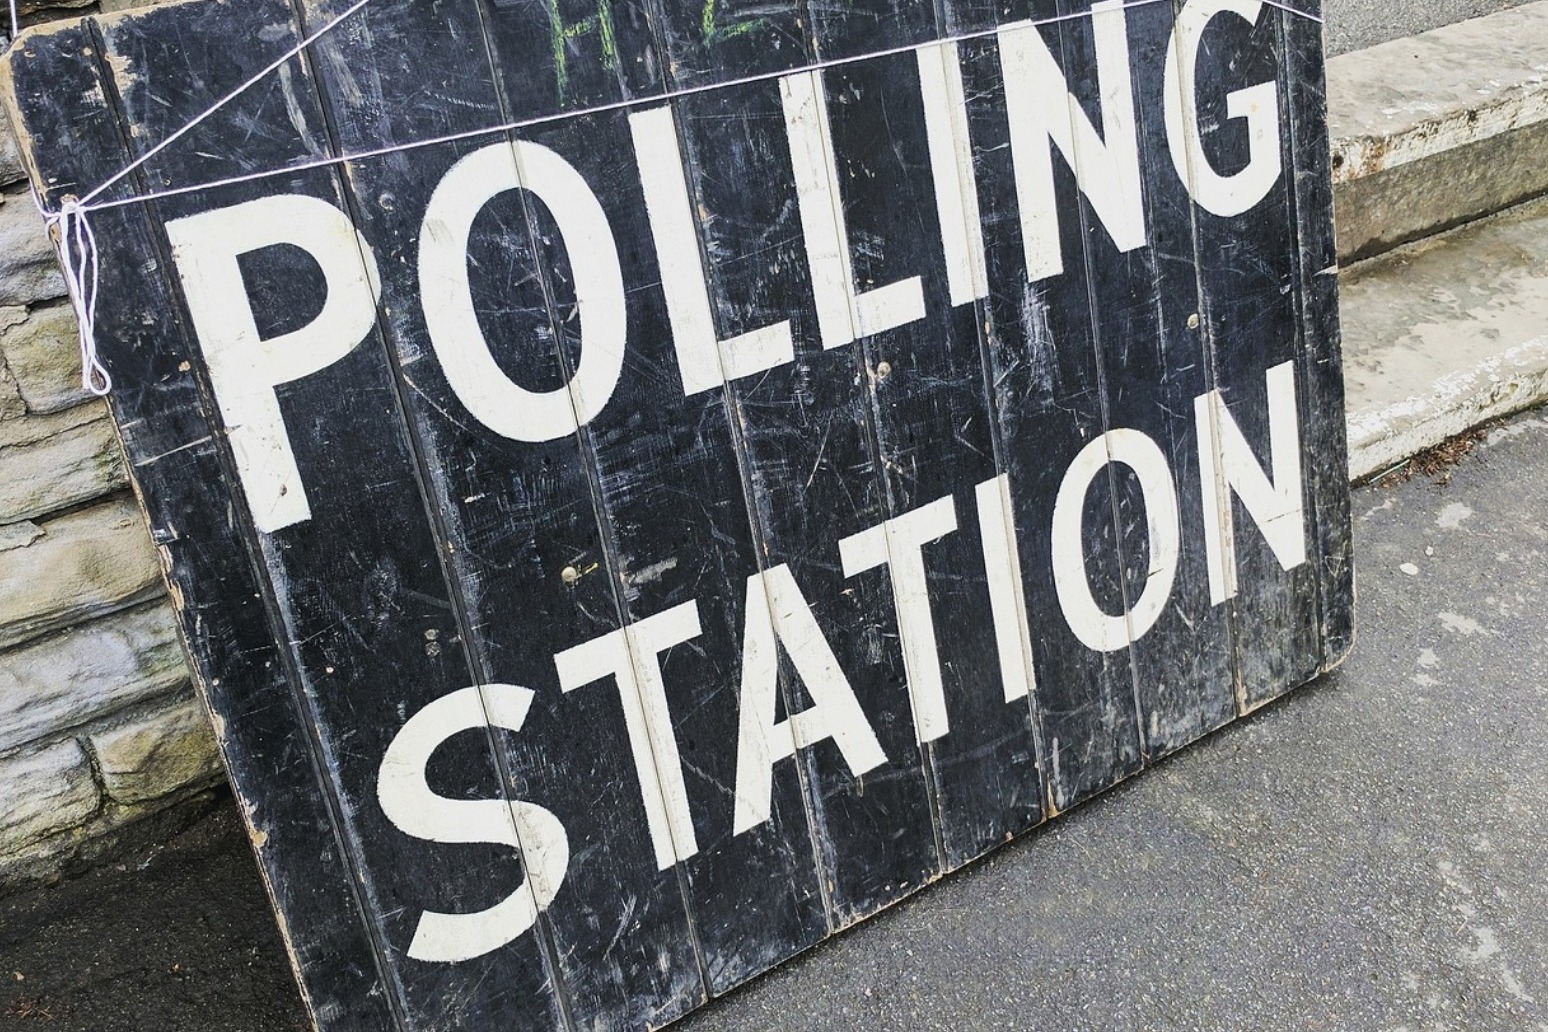 Brexit party denied first Parliament seat by Labour